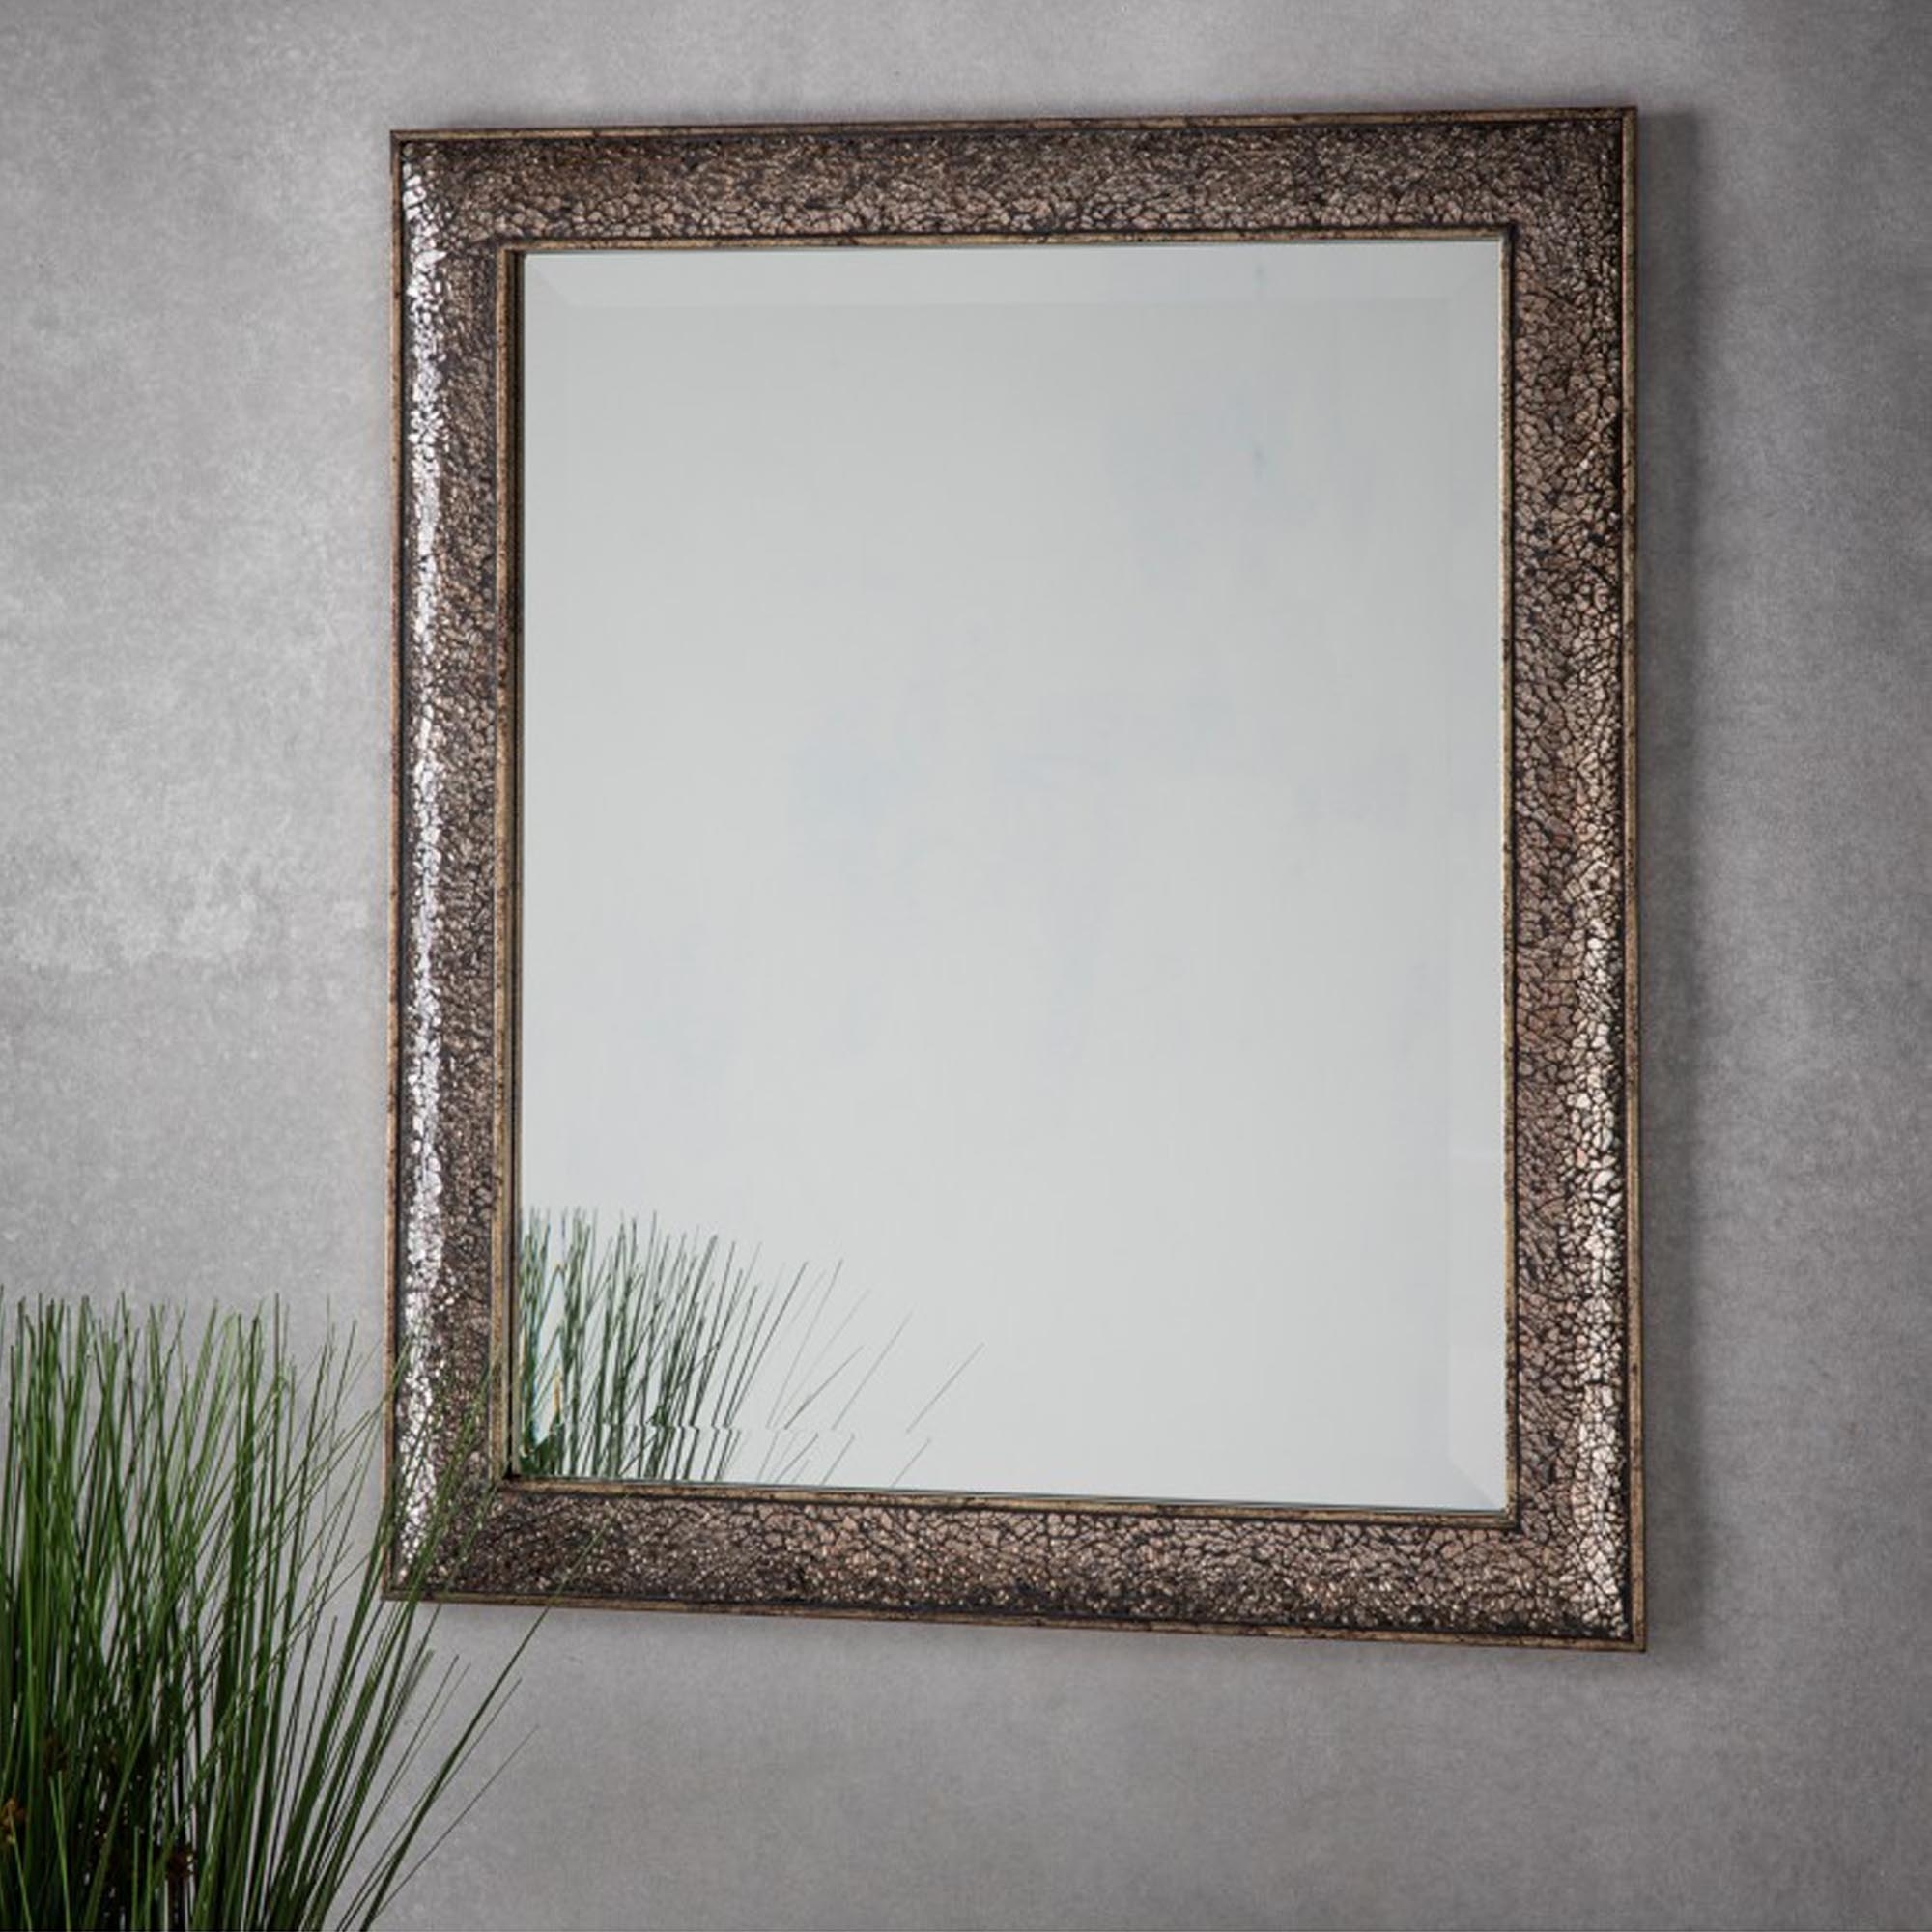 contemporary mirrors  contemporary wall mirrors  modern mirrors - amberley mirror (pk)